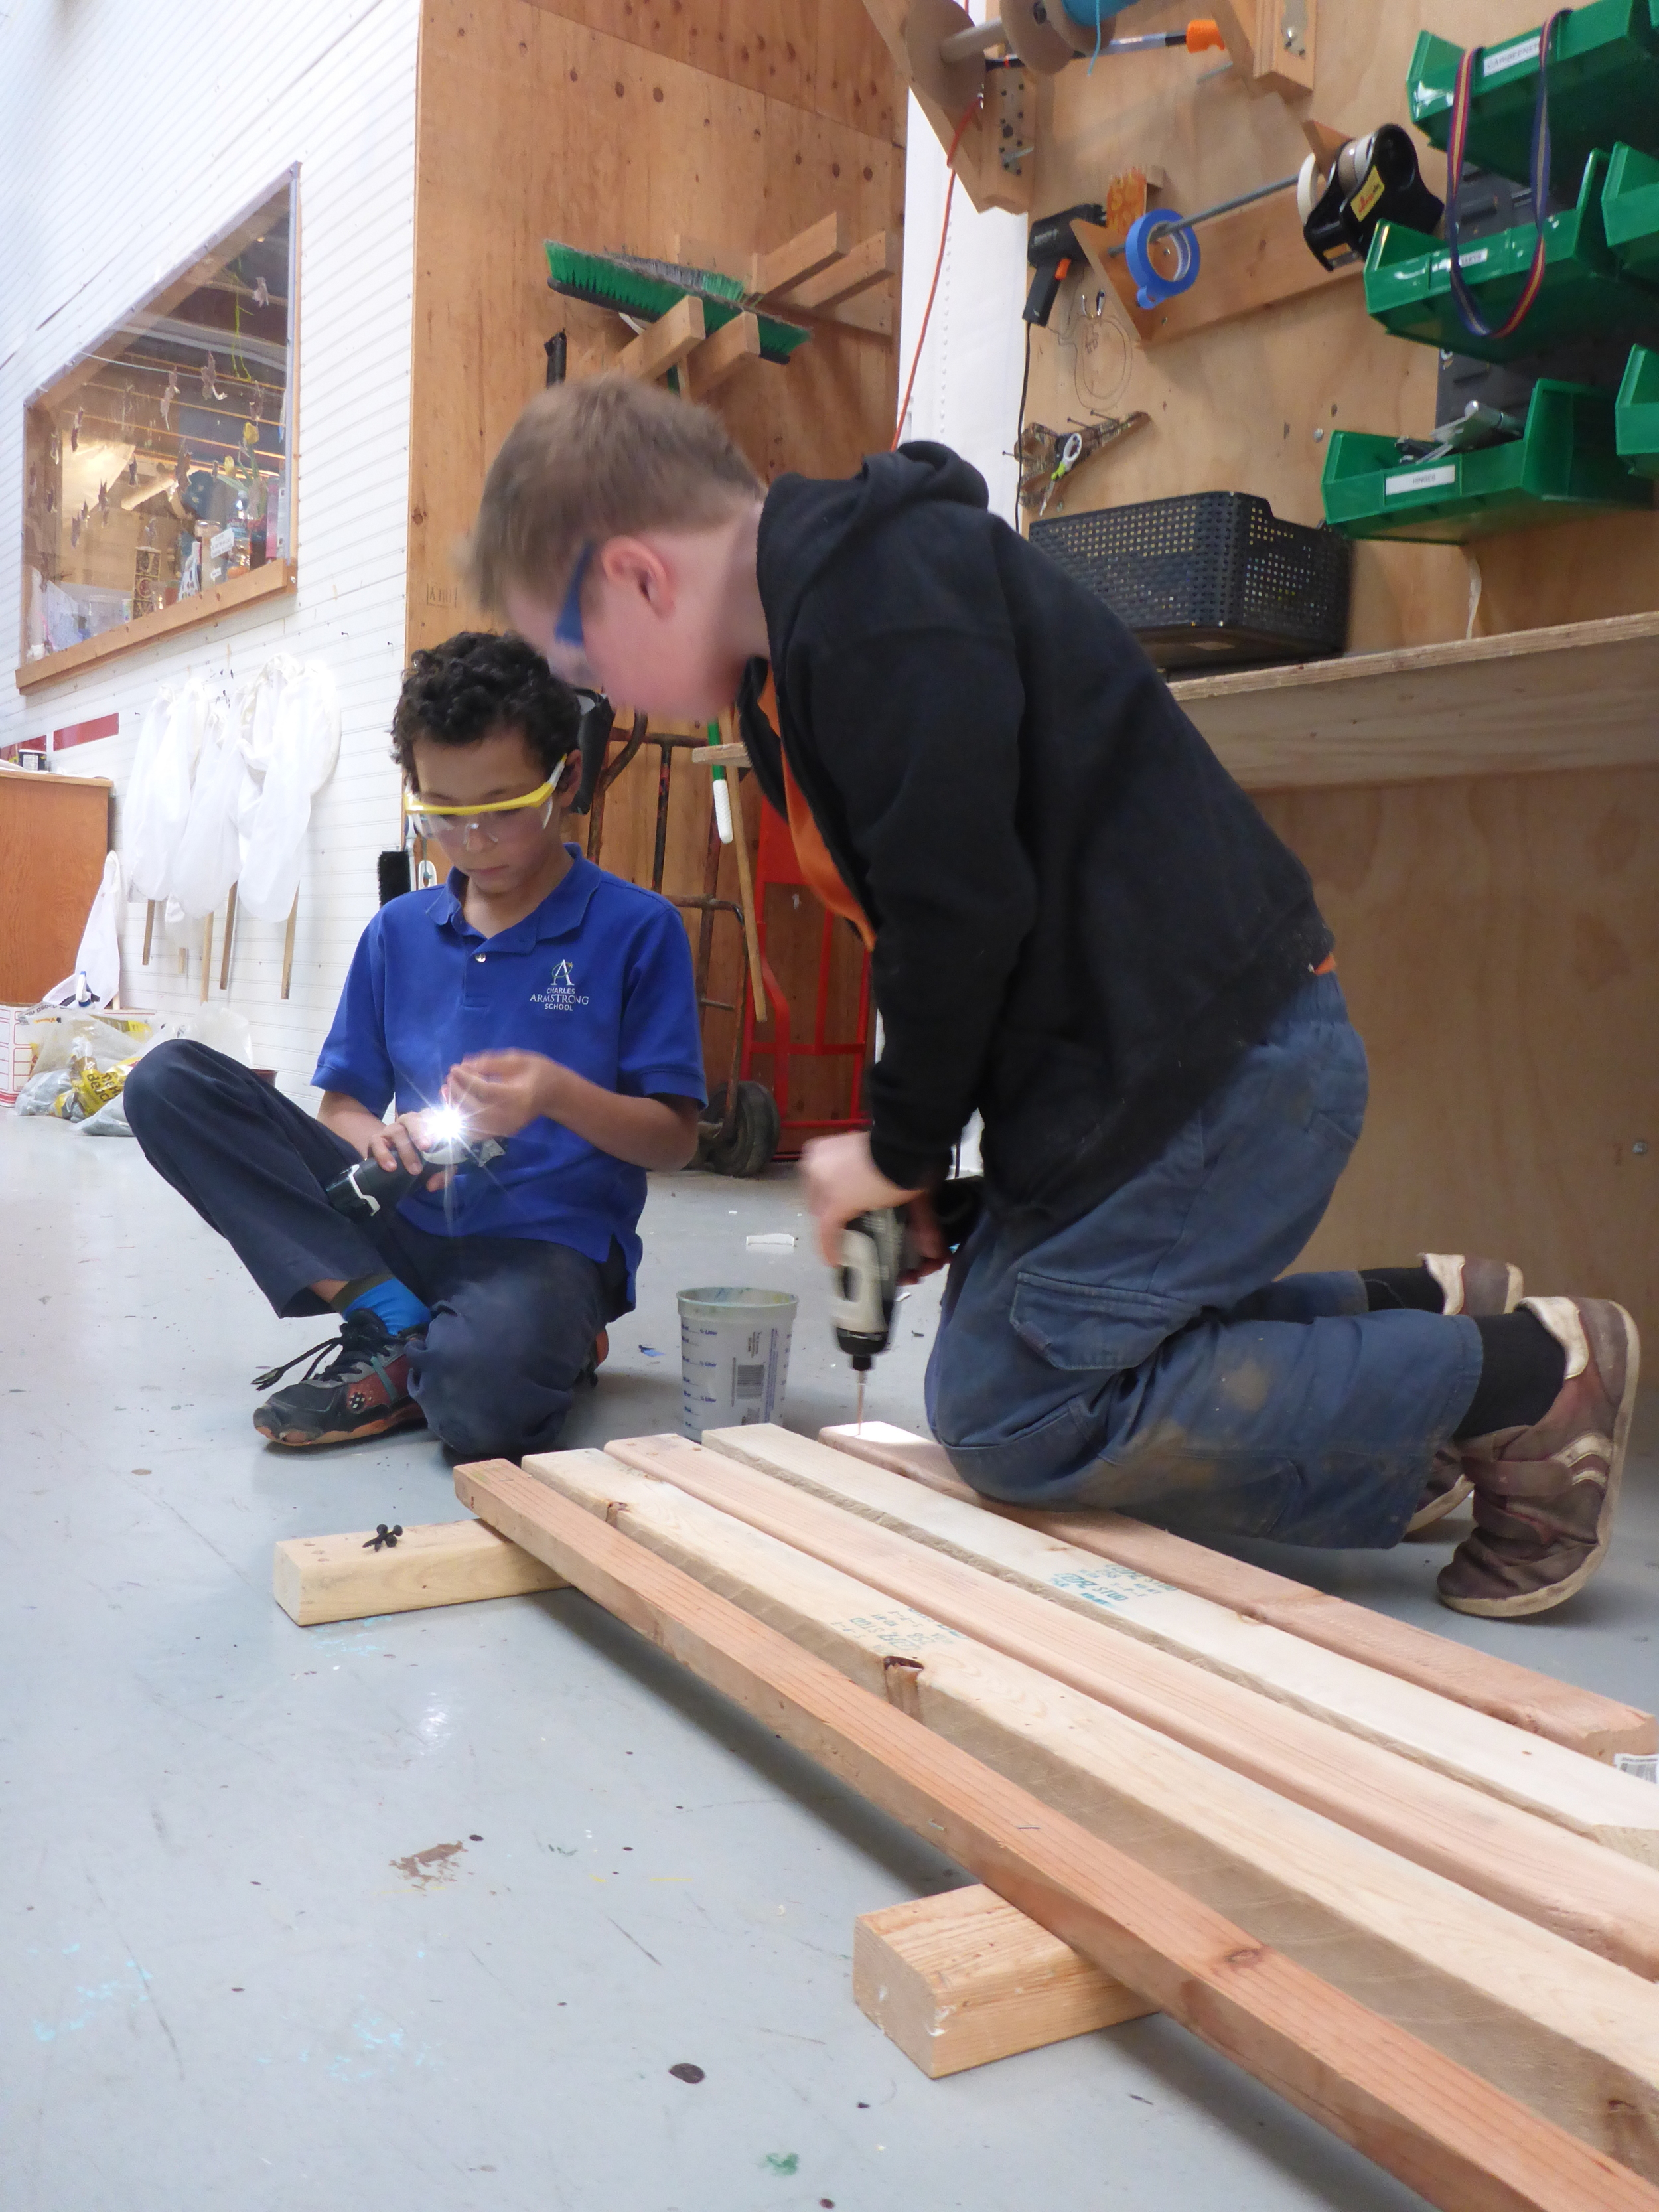 Assembling the first draft (prototype) of a giant wooden xylophone. Tinkerers experimented with clanking wooden boards of different lengths and found that the shorter boards made higher sounds! They were also pretty excited to use the power drills.